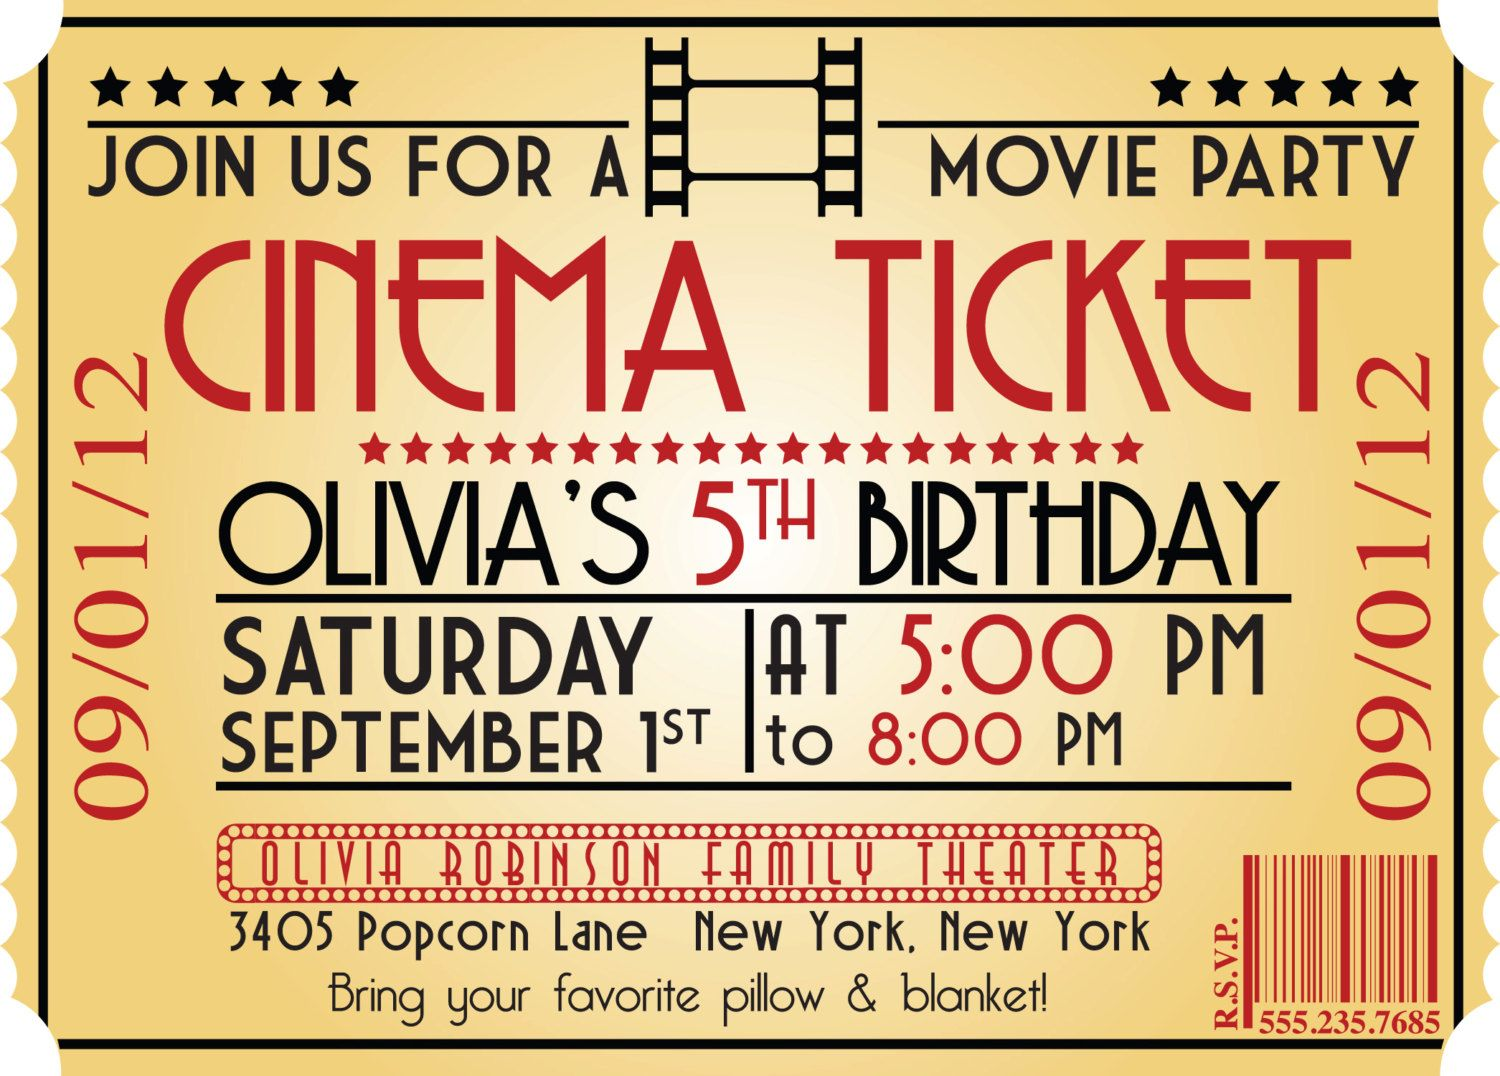 MOVIE NIGHT Birthday Party Themed Invitation – Ticket Style Birthday Invitations